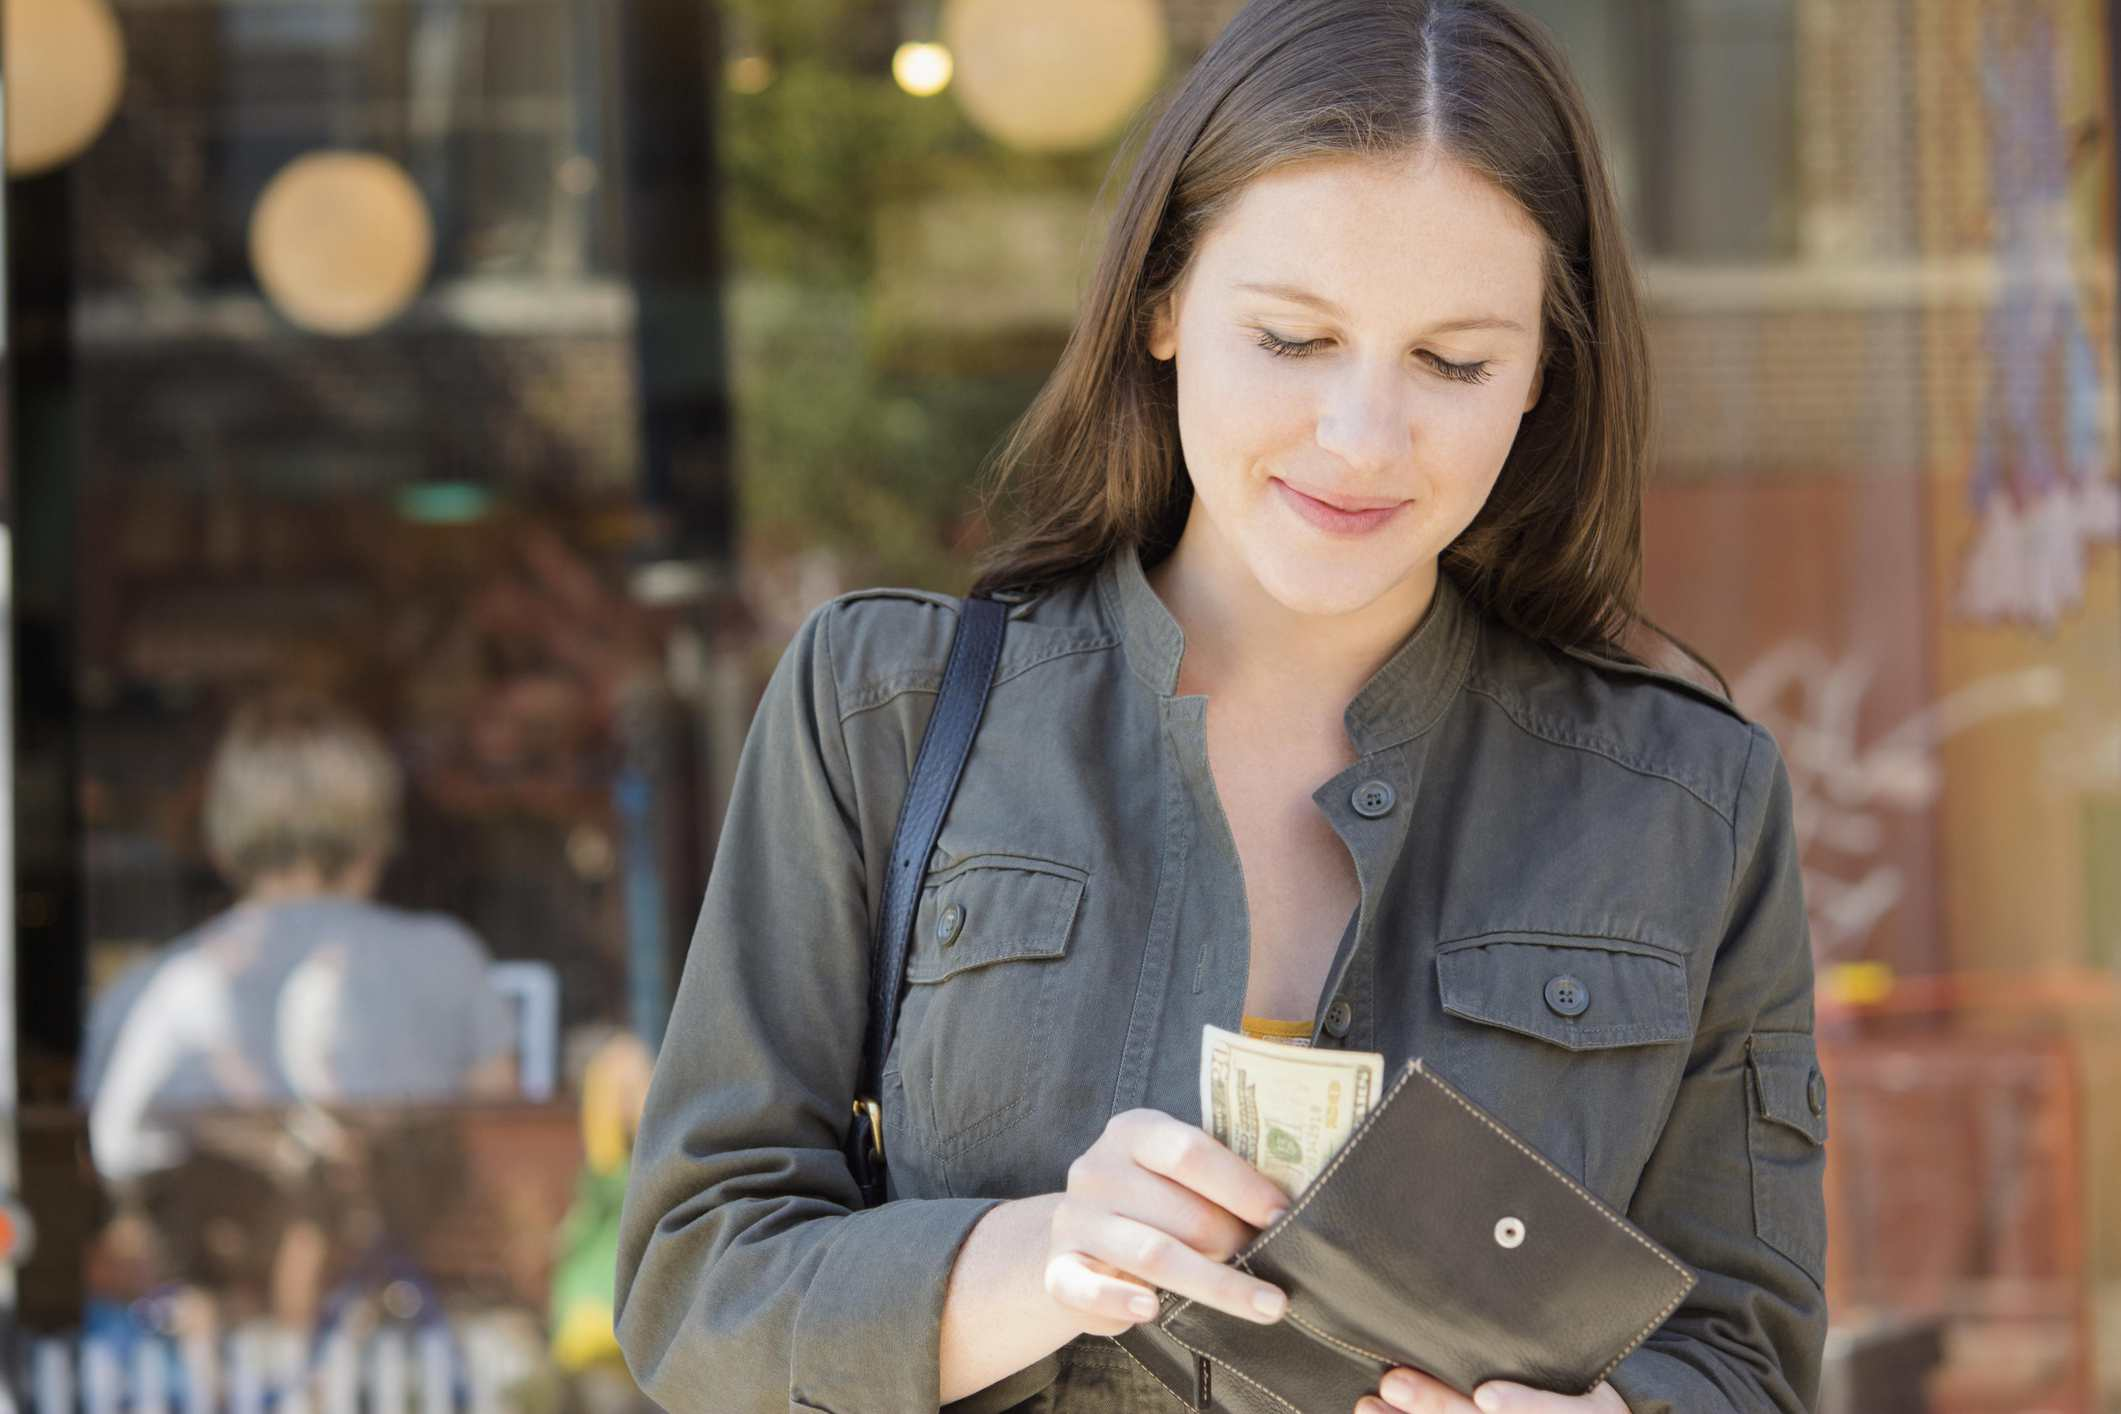 Image of a woman pulling money out of her wallet.